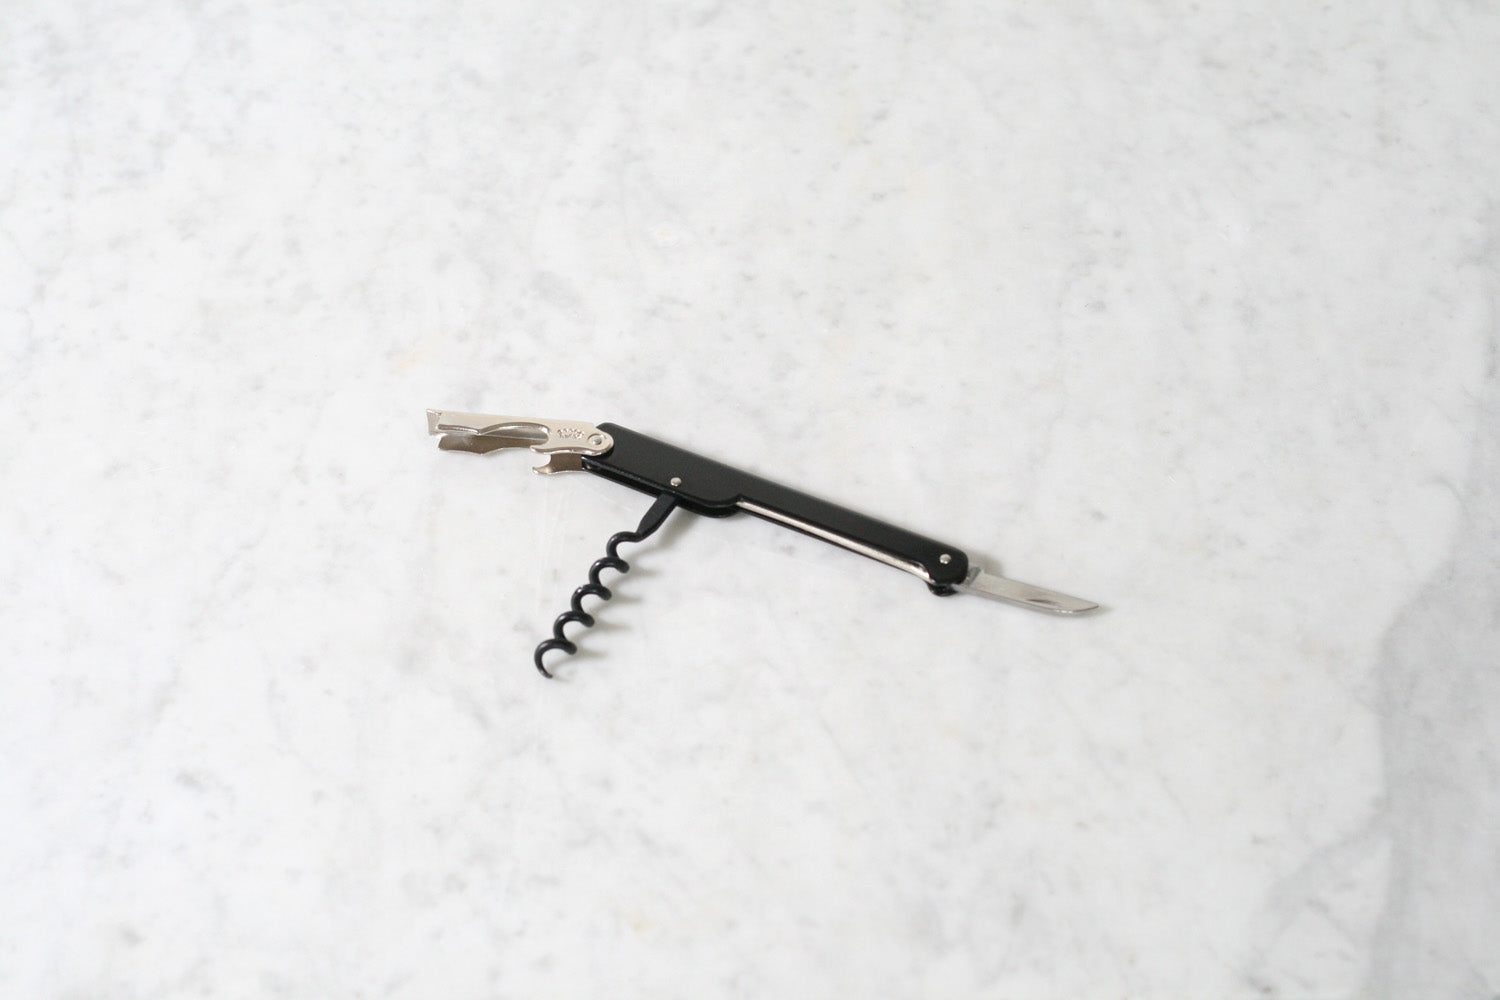 Cartailler-Deluc Waiter's Corkscrew. Made in France.